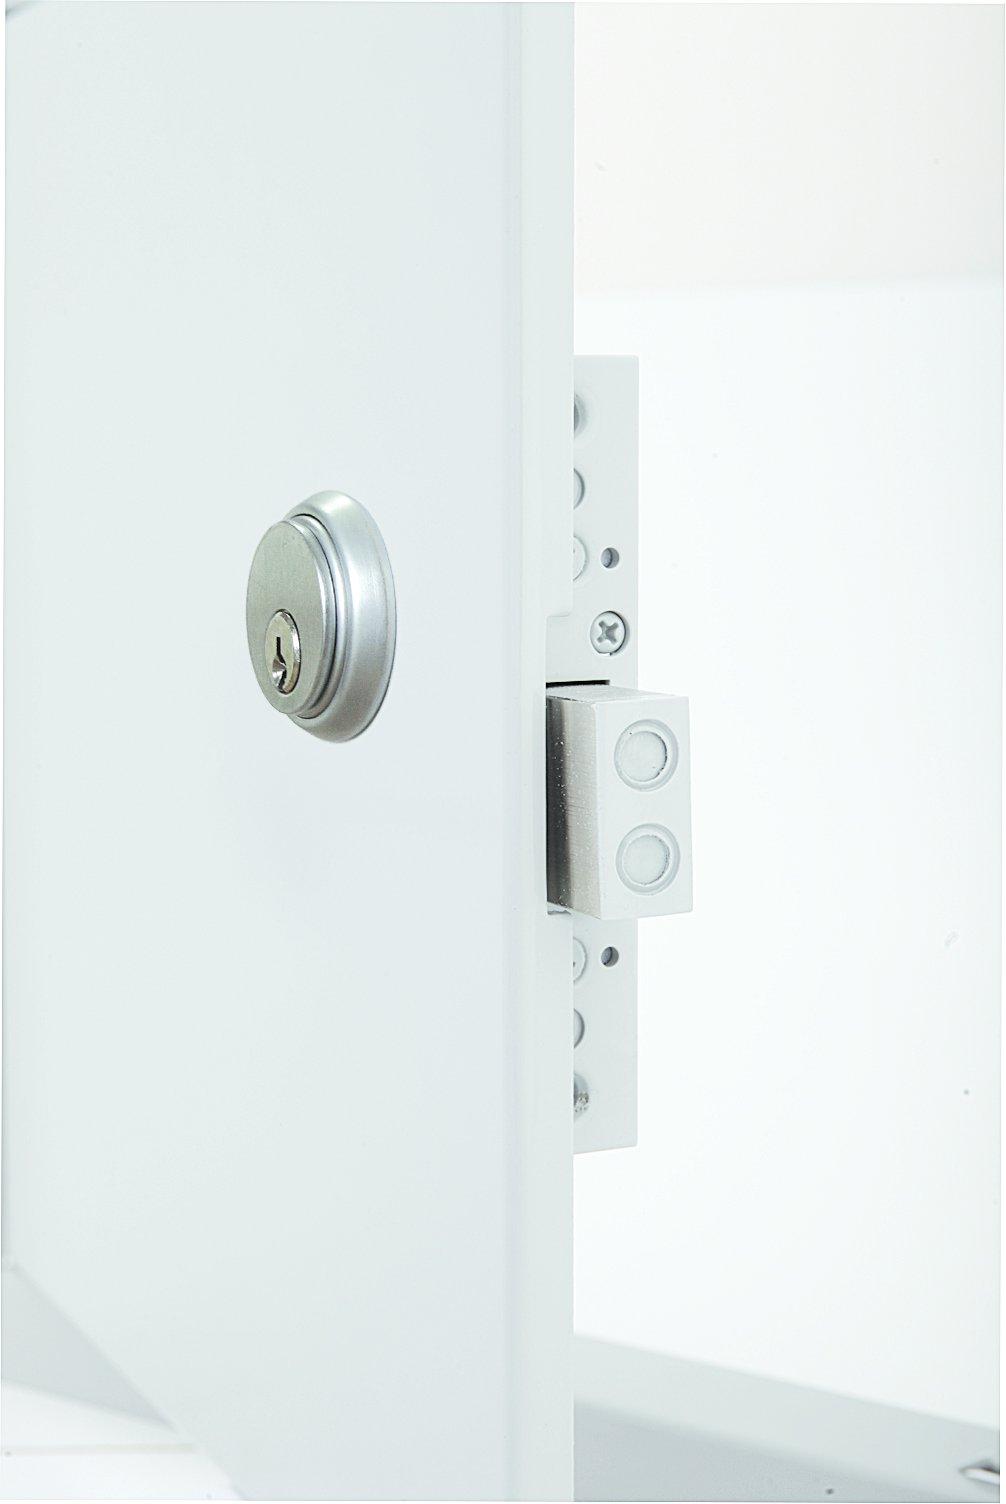 High Security Flush Universel Access Door with Exposed Flange, mortise deadbolt lock with cylinder, keyed alike, heavy duty butt hinge